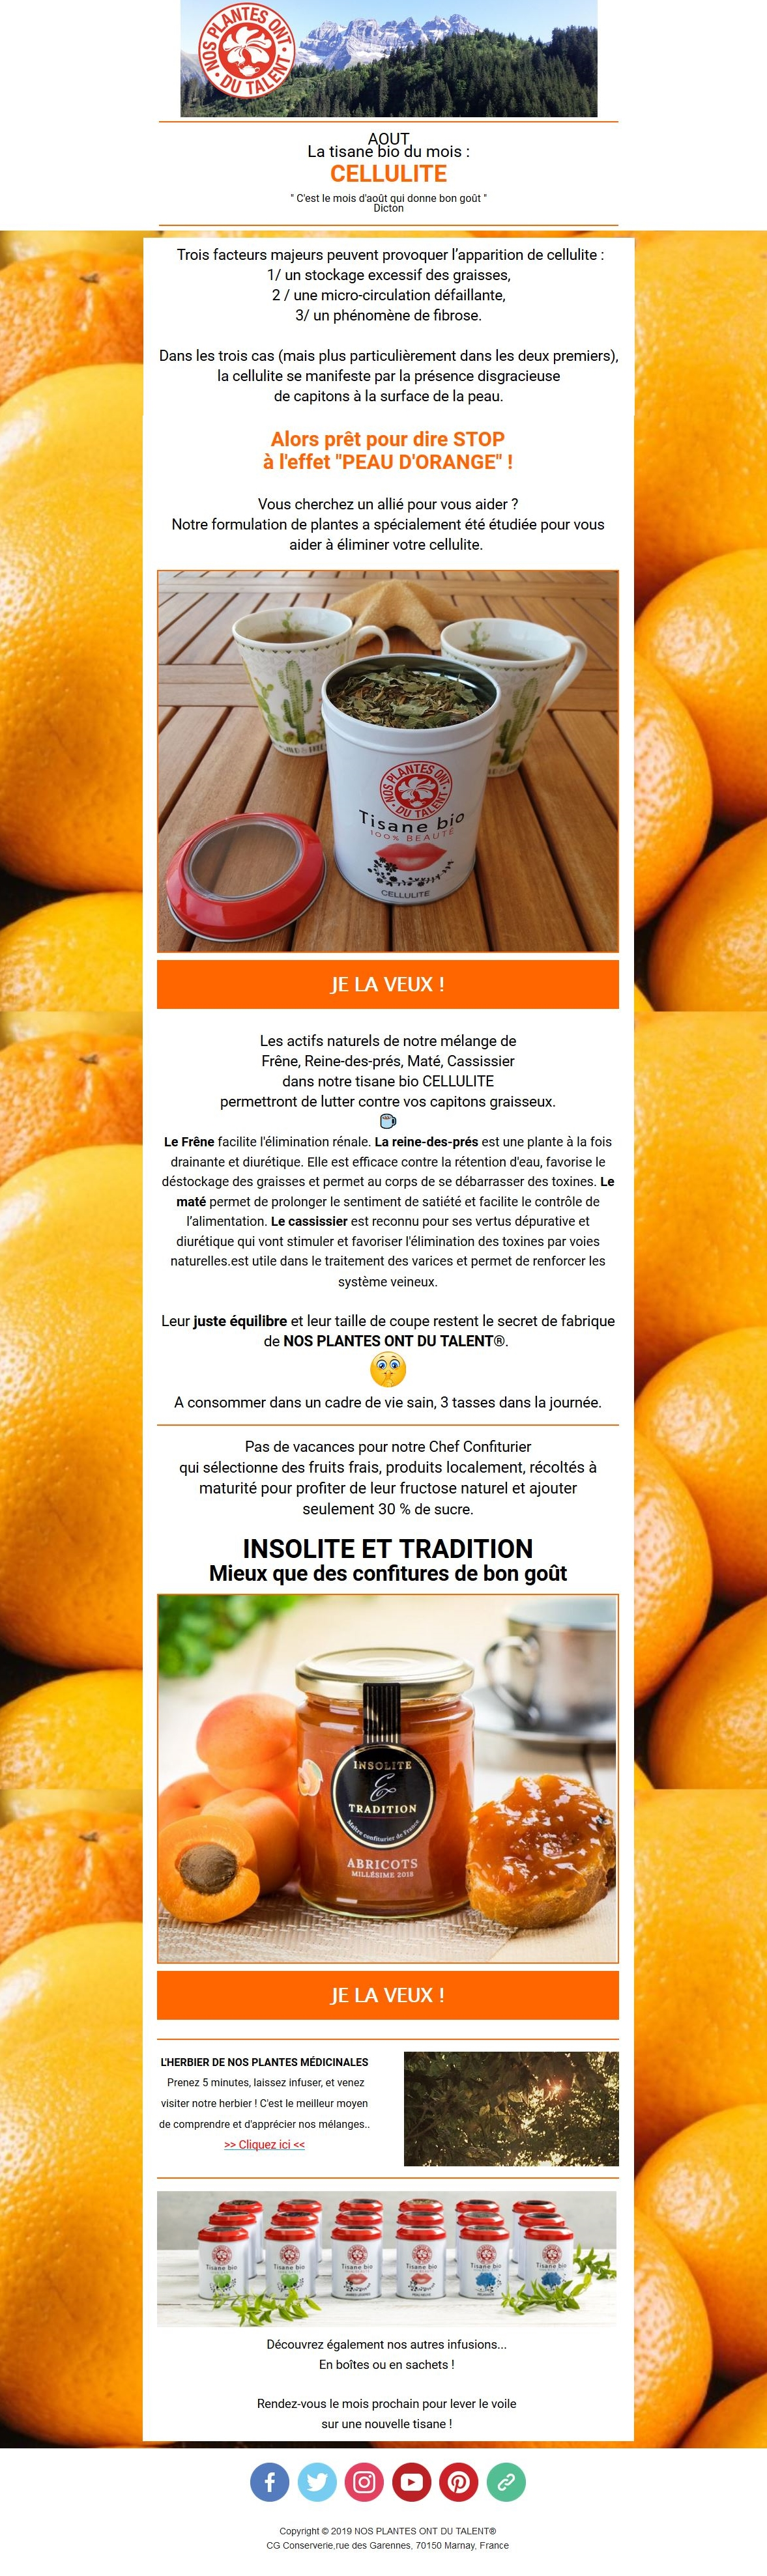 Tisane bio Cellulite contre la peau d'orange